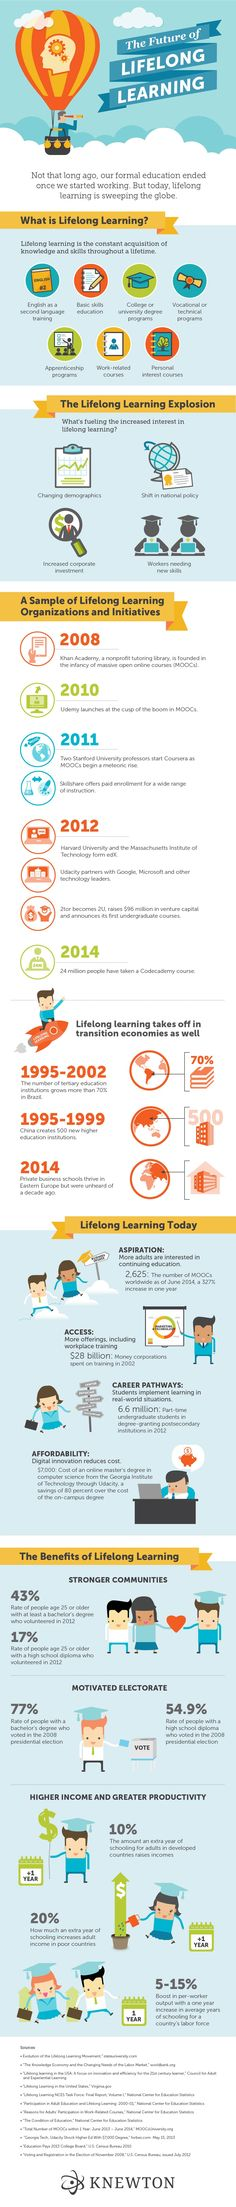 The Future of Lifelong Learning Infographic presents the recent lifelong learning explosion, provides a brief overview of lifelong learning organizations and initiatives and lists some of its societal benefits.